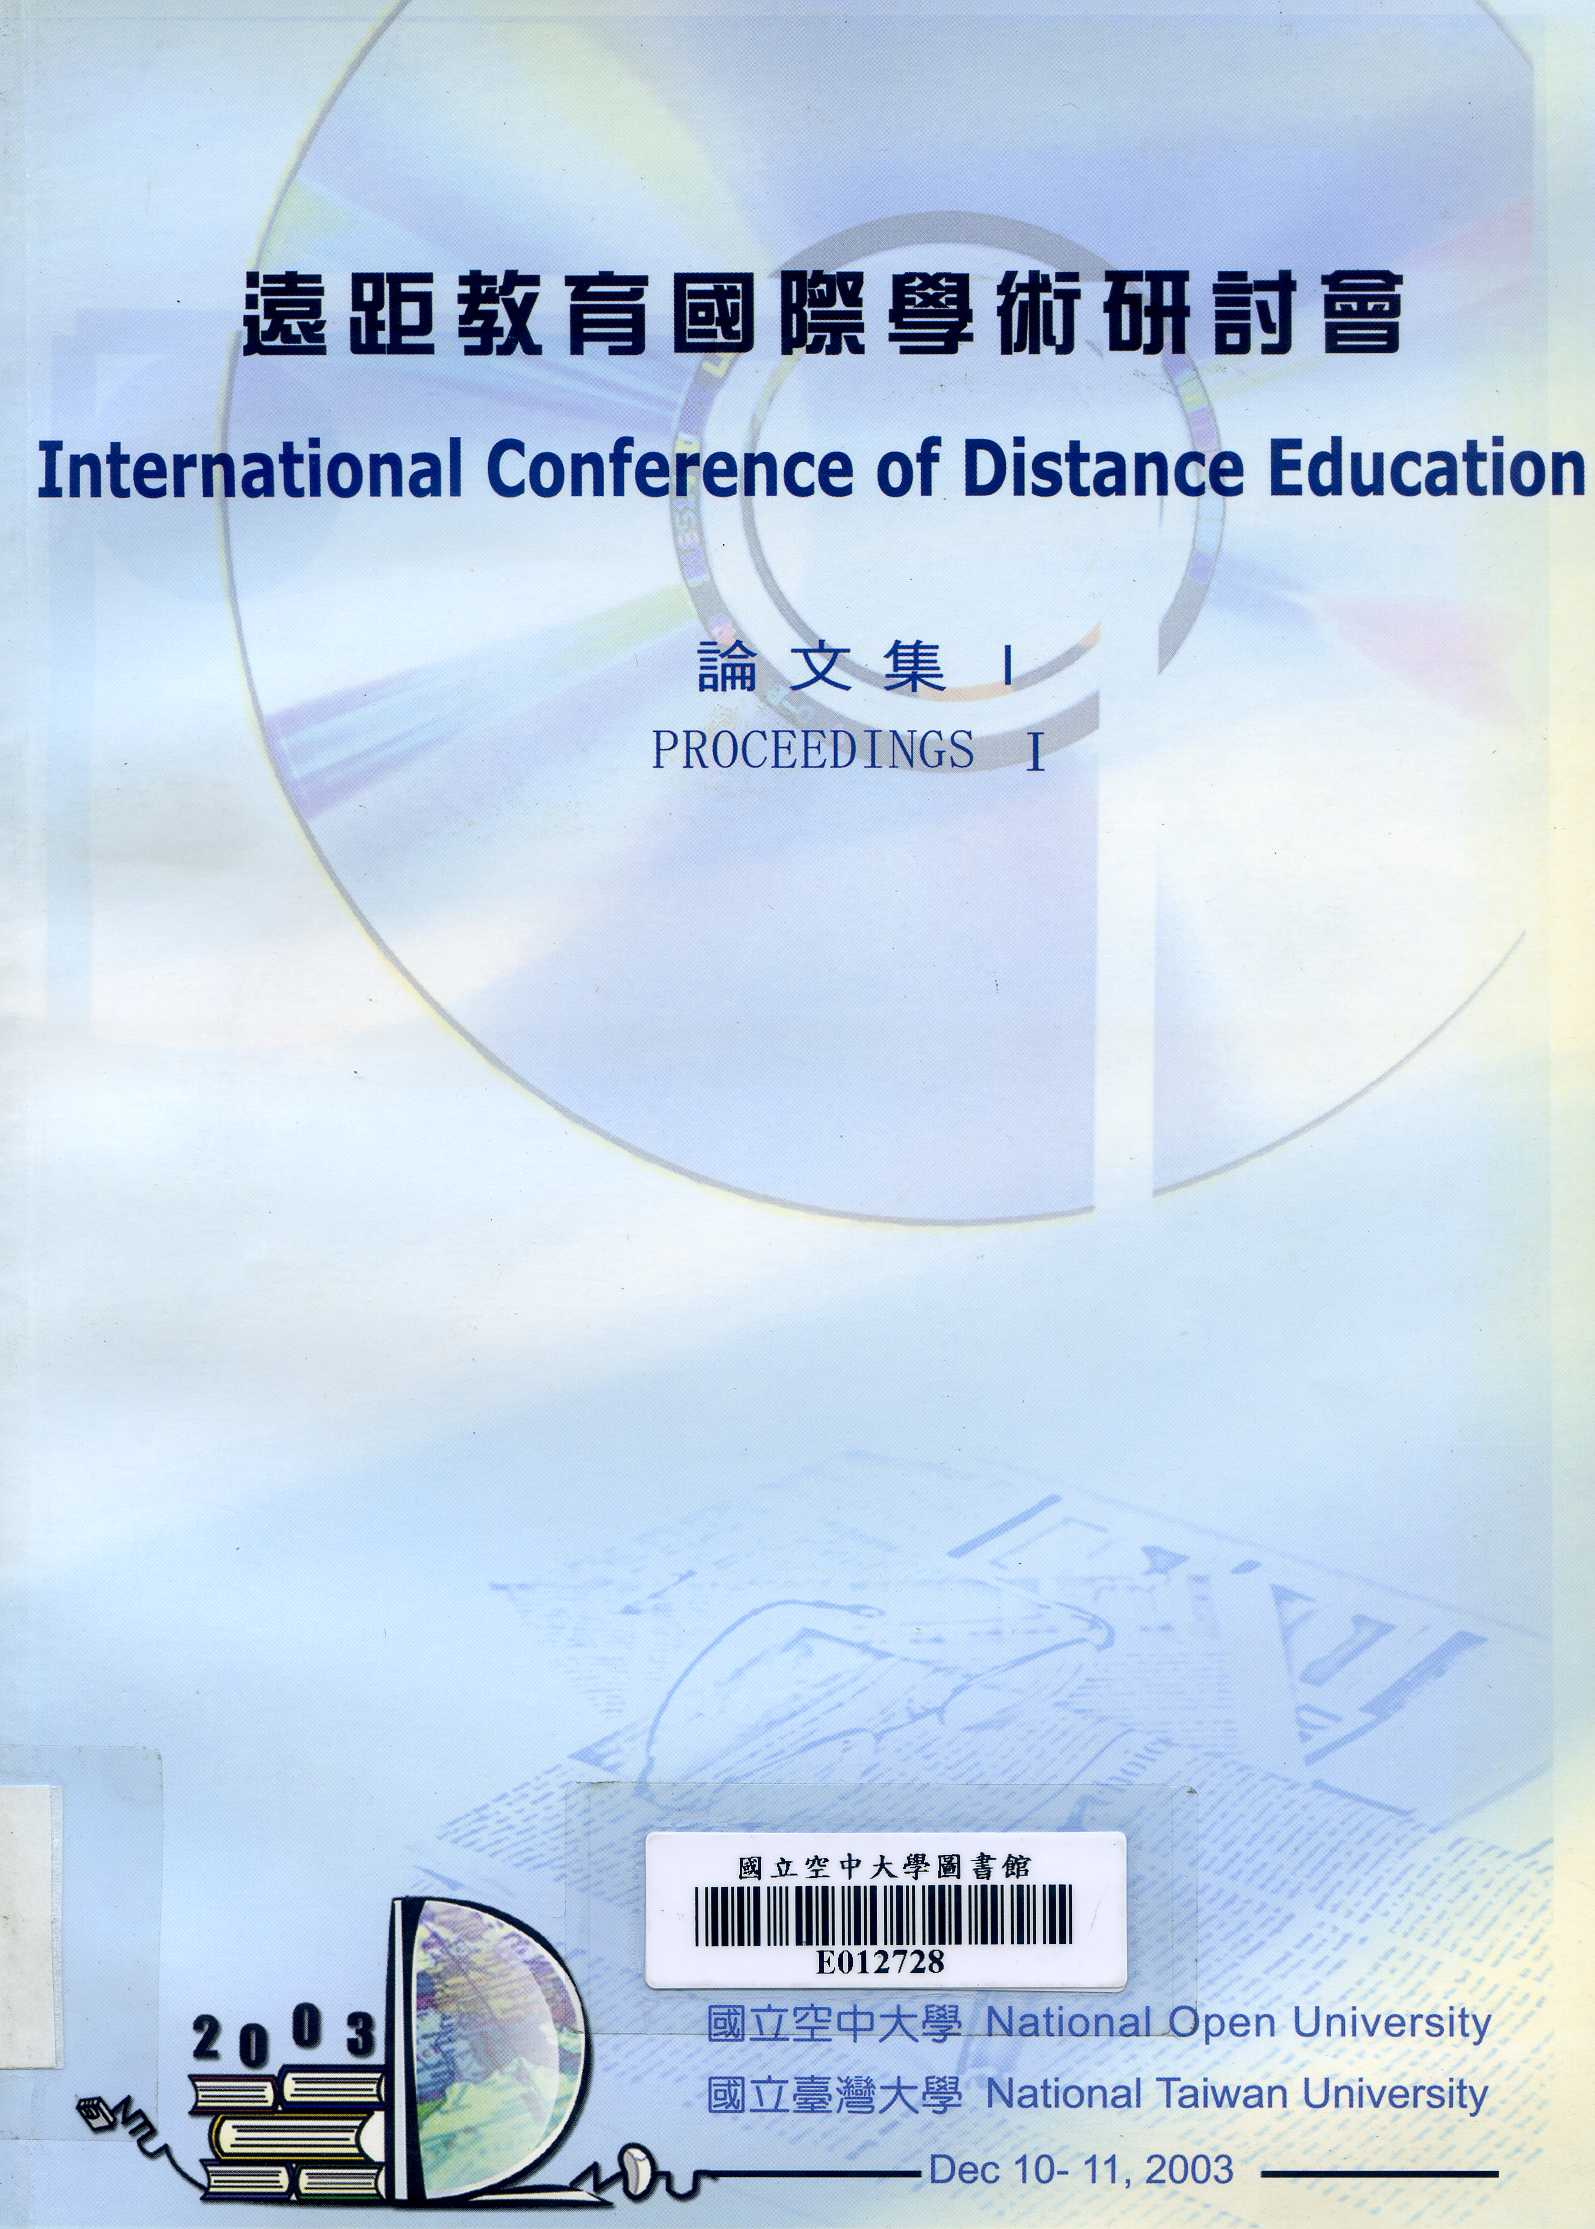 International conference of distance education proceedings Ⅰ = 遠距教育國際學術研討會論文集 Ⅰ